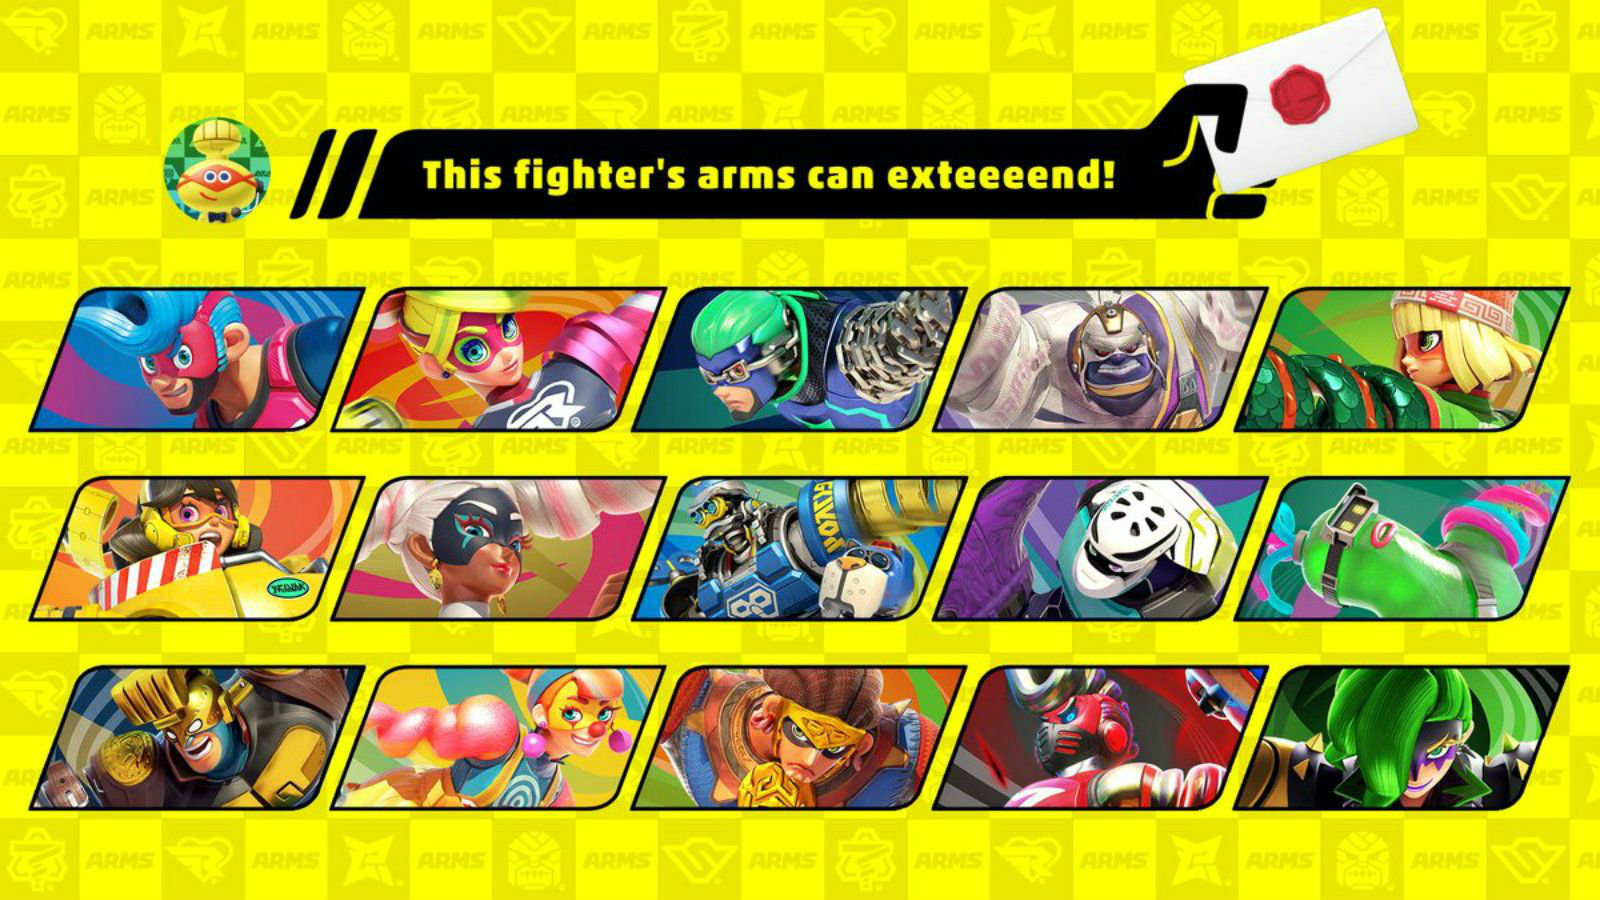 A new ARMS fighter coming to Smash with the whole roster